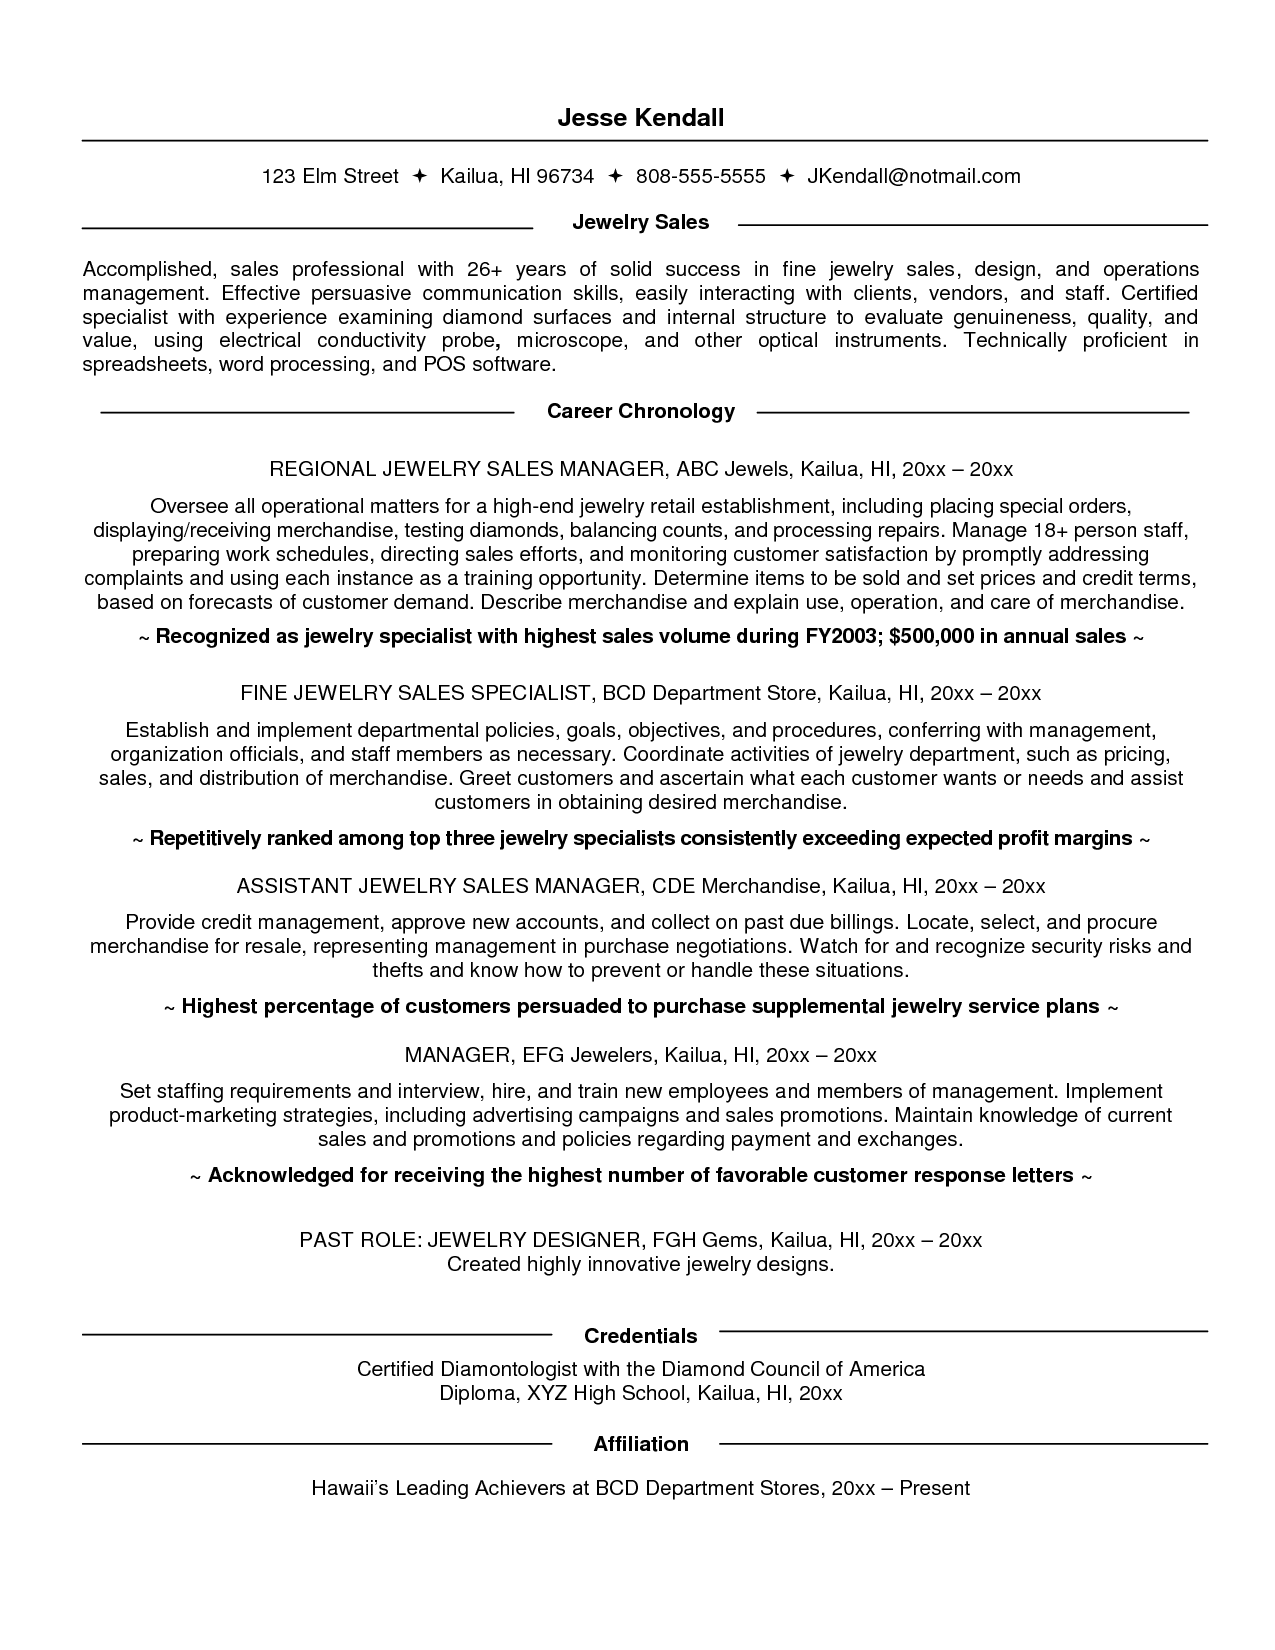 Valid Cover Letter for Sales Consultant Job Retail